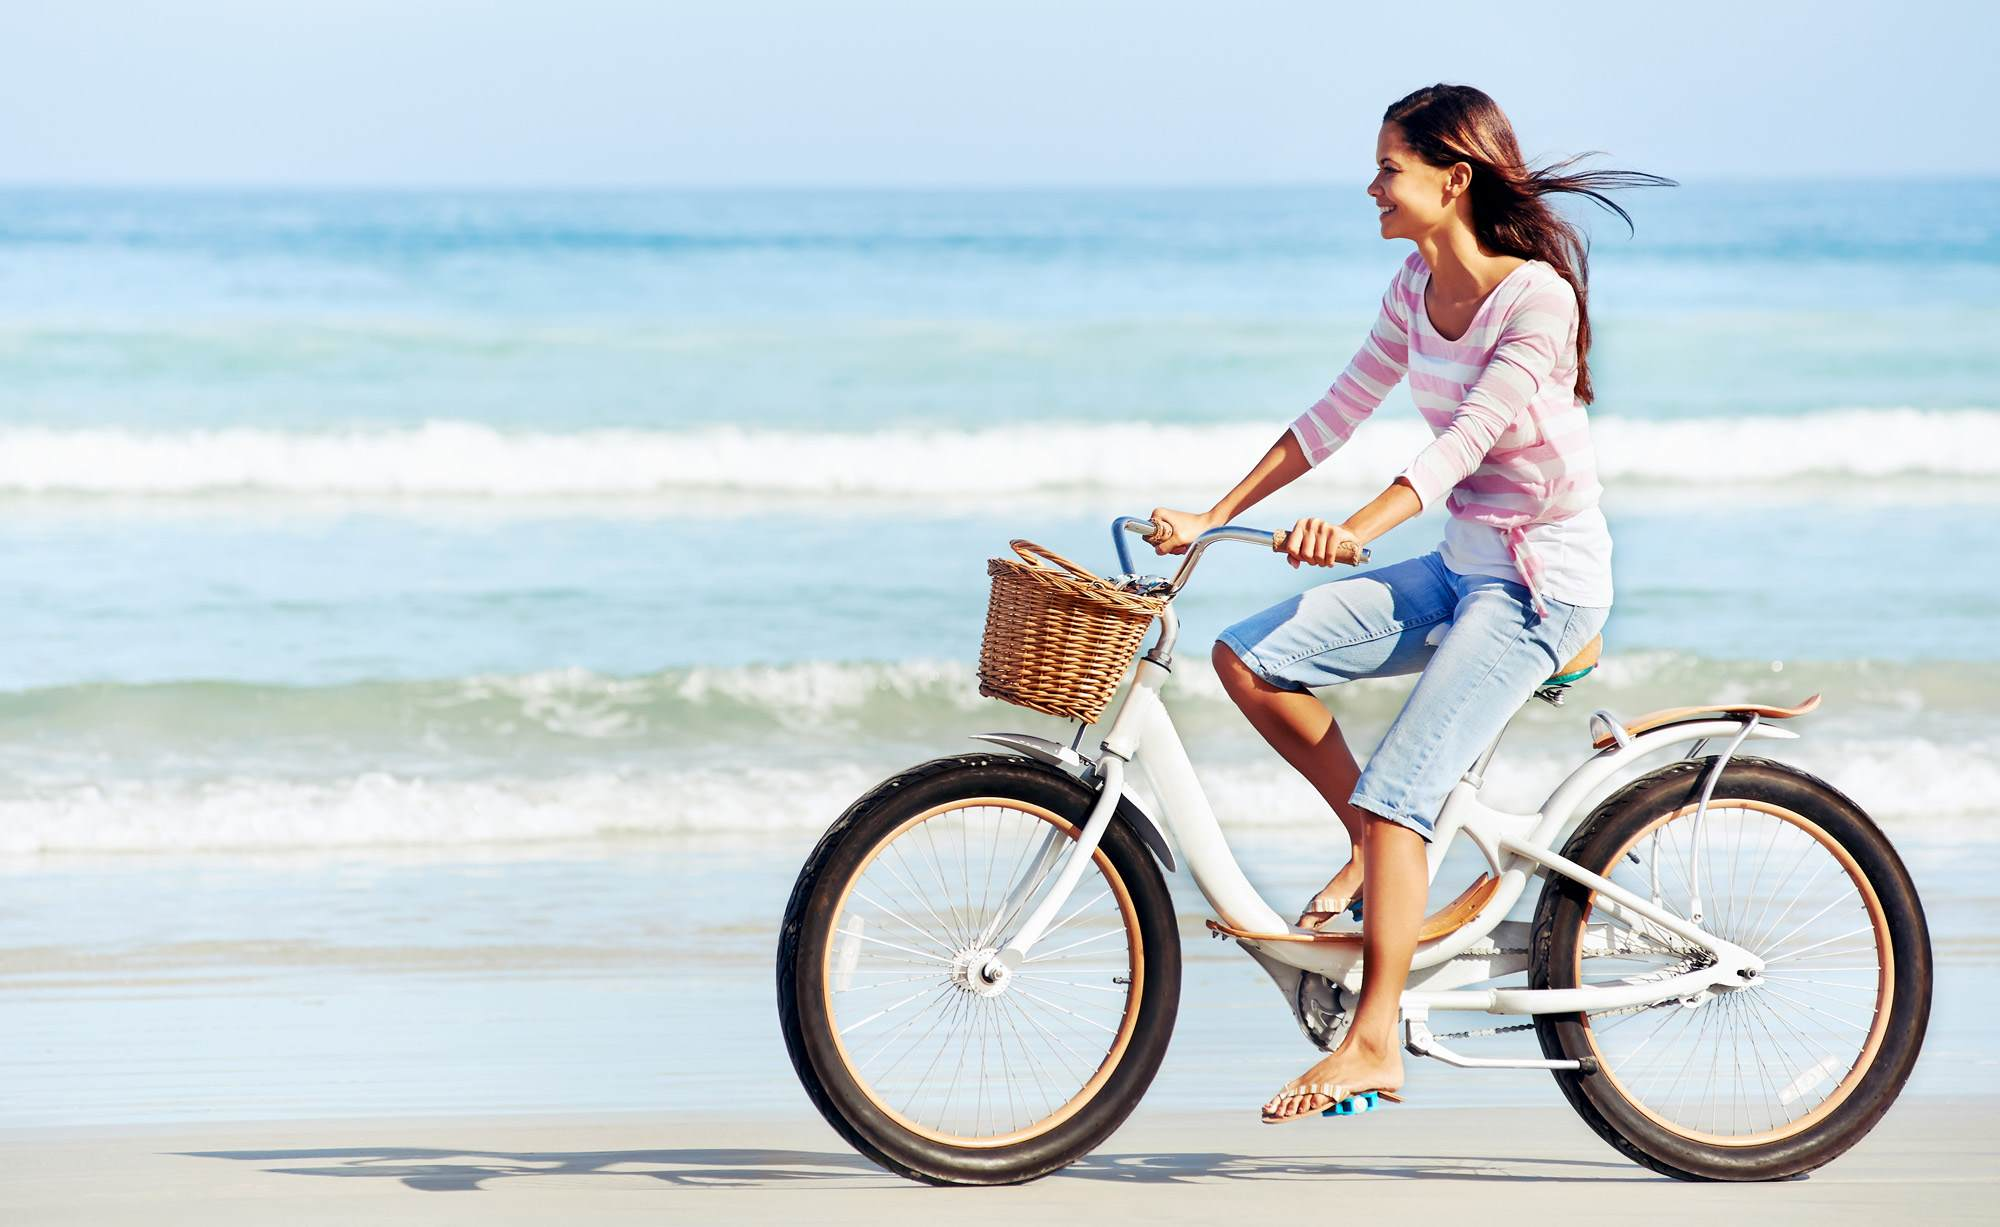 Girl on bike riding on sea shore